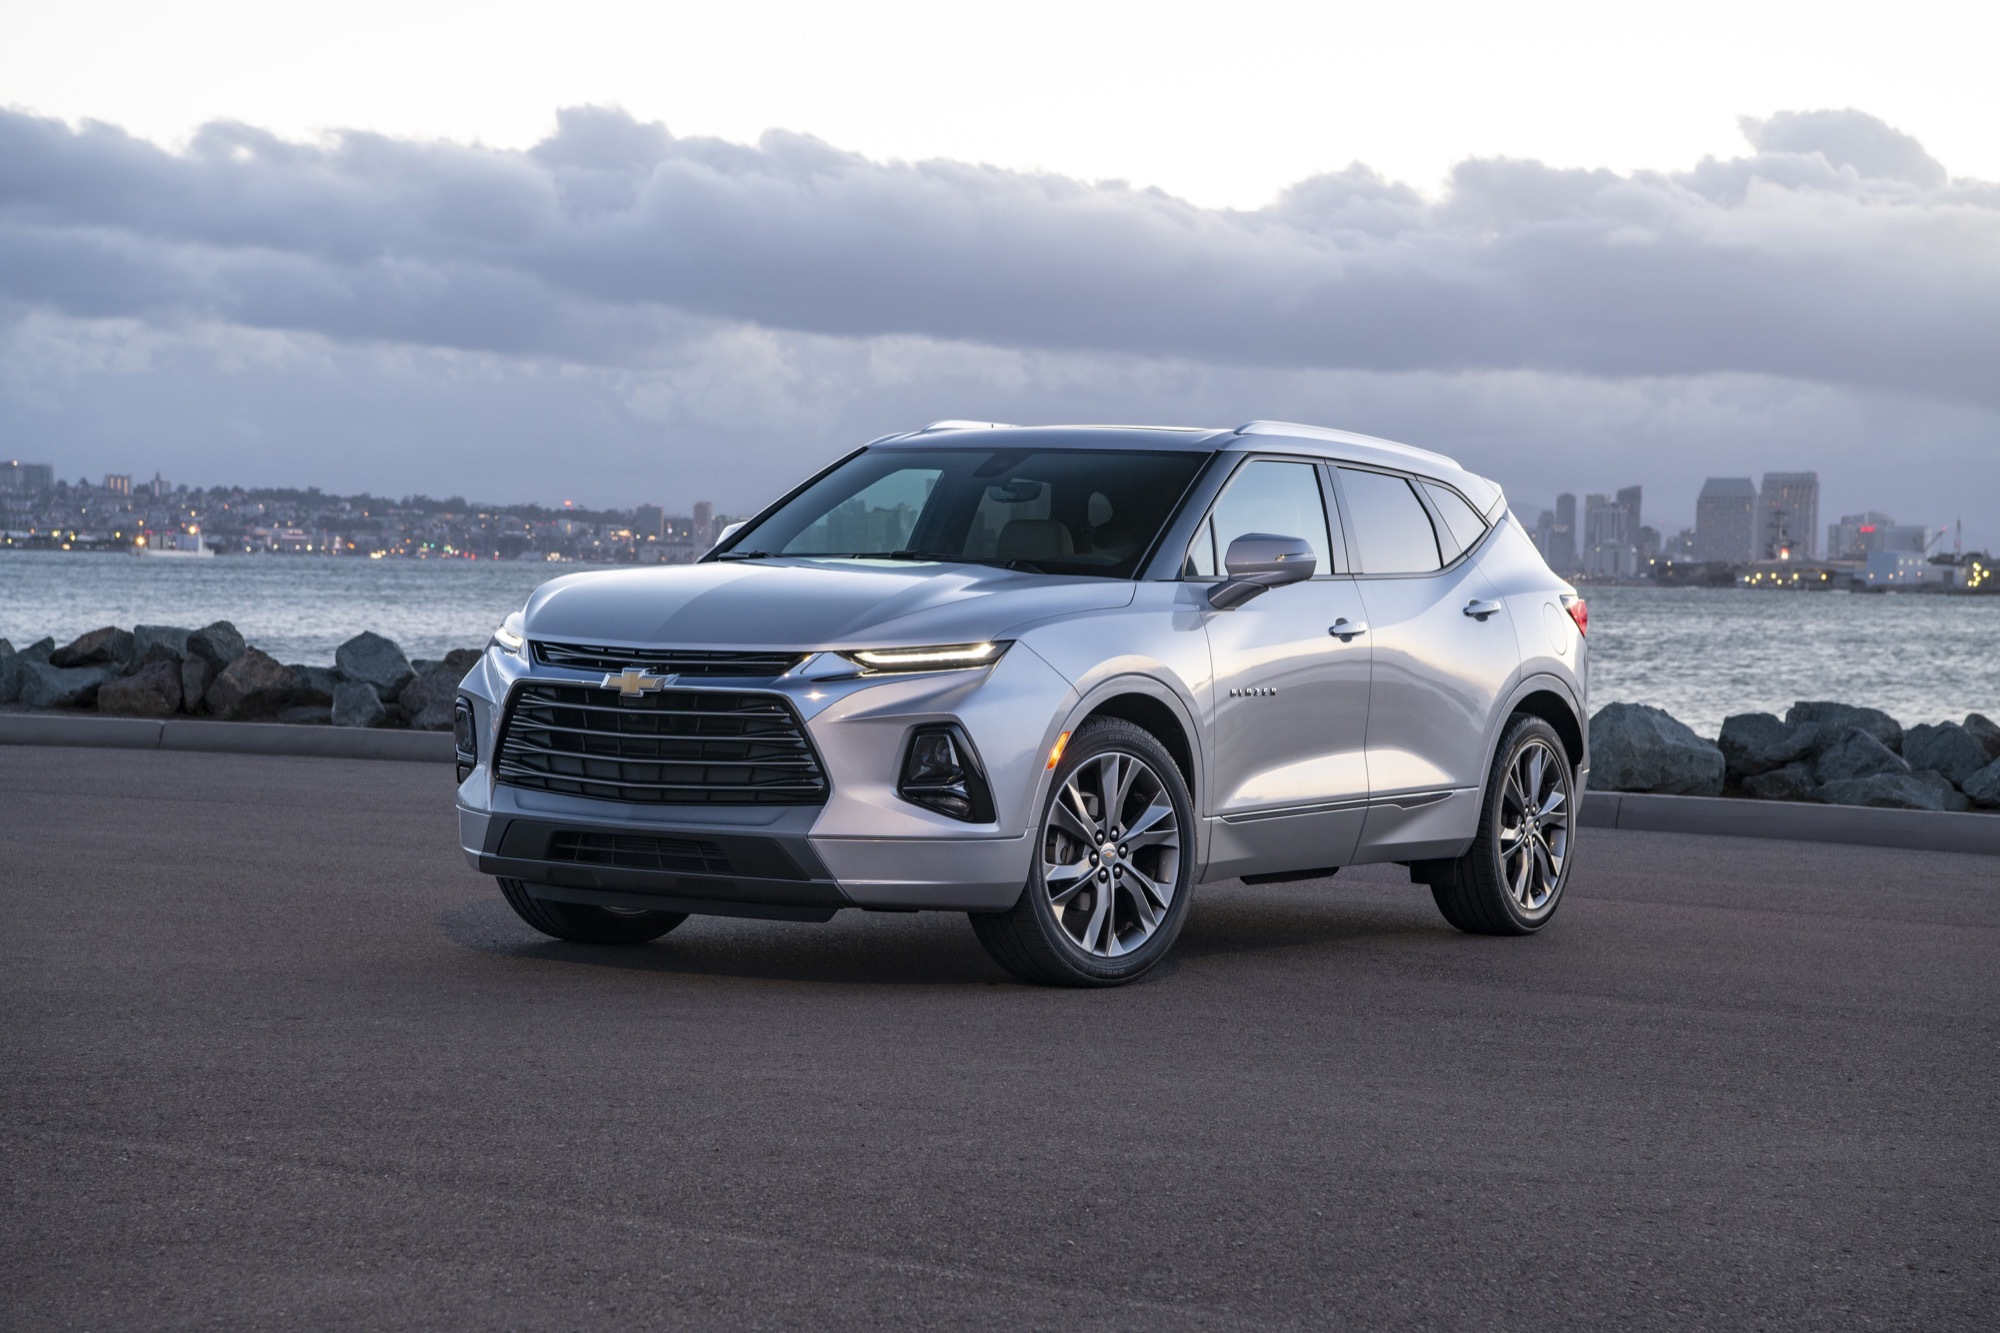 2019 Chevrolet Blazer Reviews | Price, specs, features ...